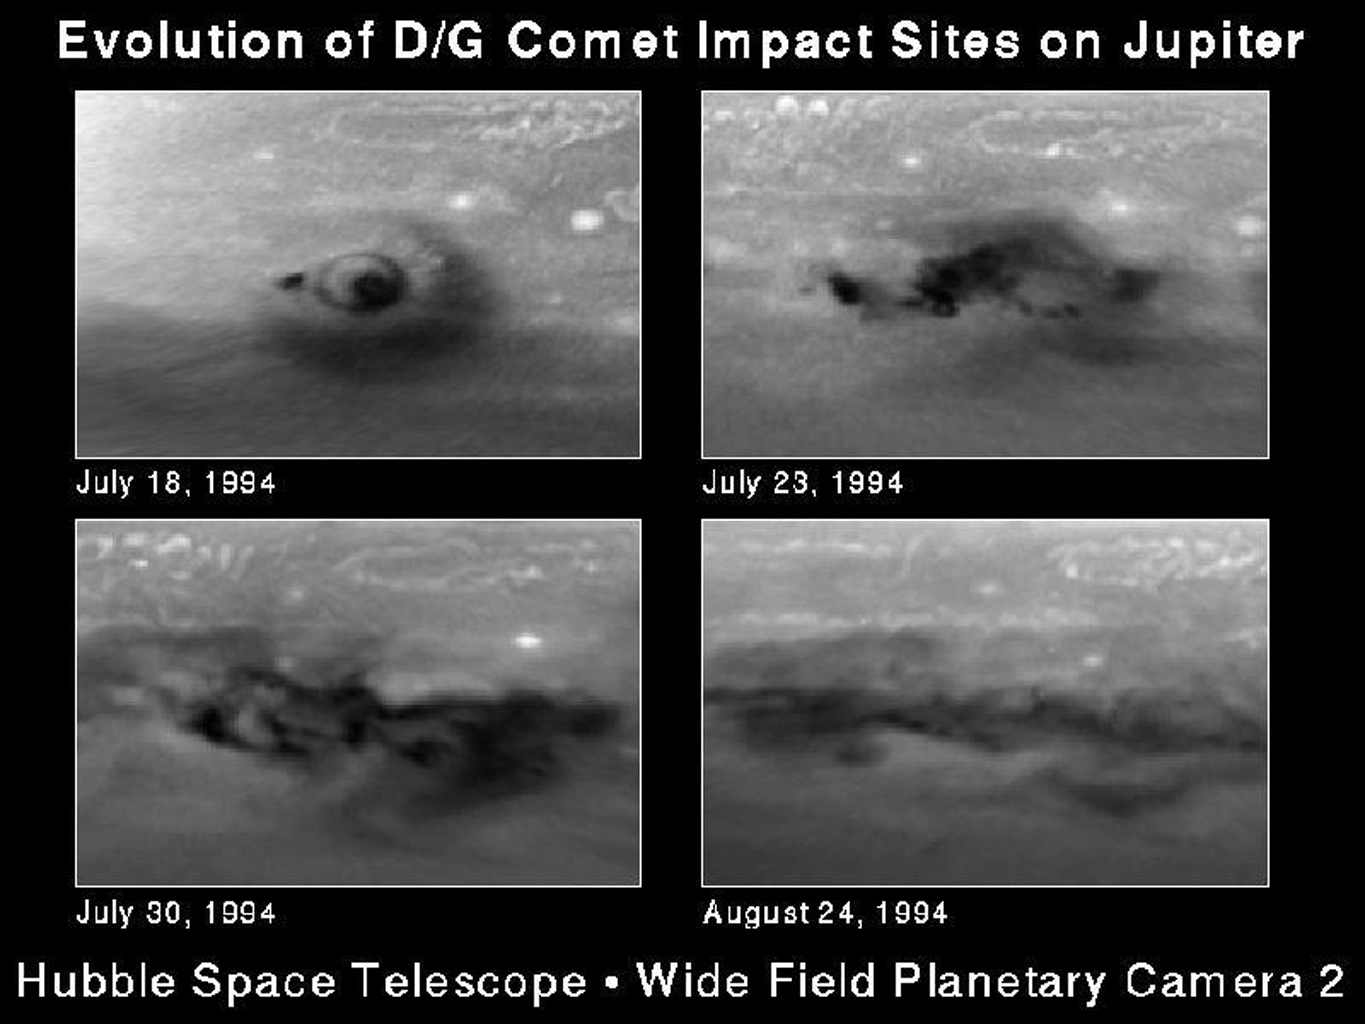 This series of snapshots, taken with NASA's Hubble Space Telescope, shows evolution of the comet P/Shoemaker-Levy 9 impact region called the D/G complex.